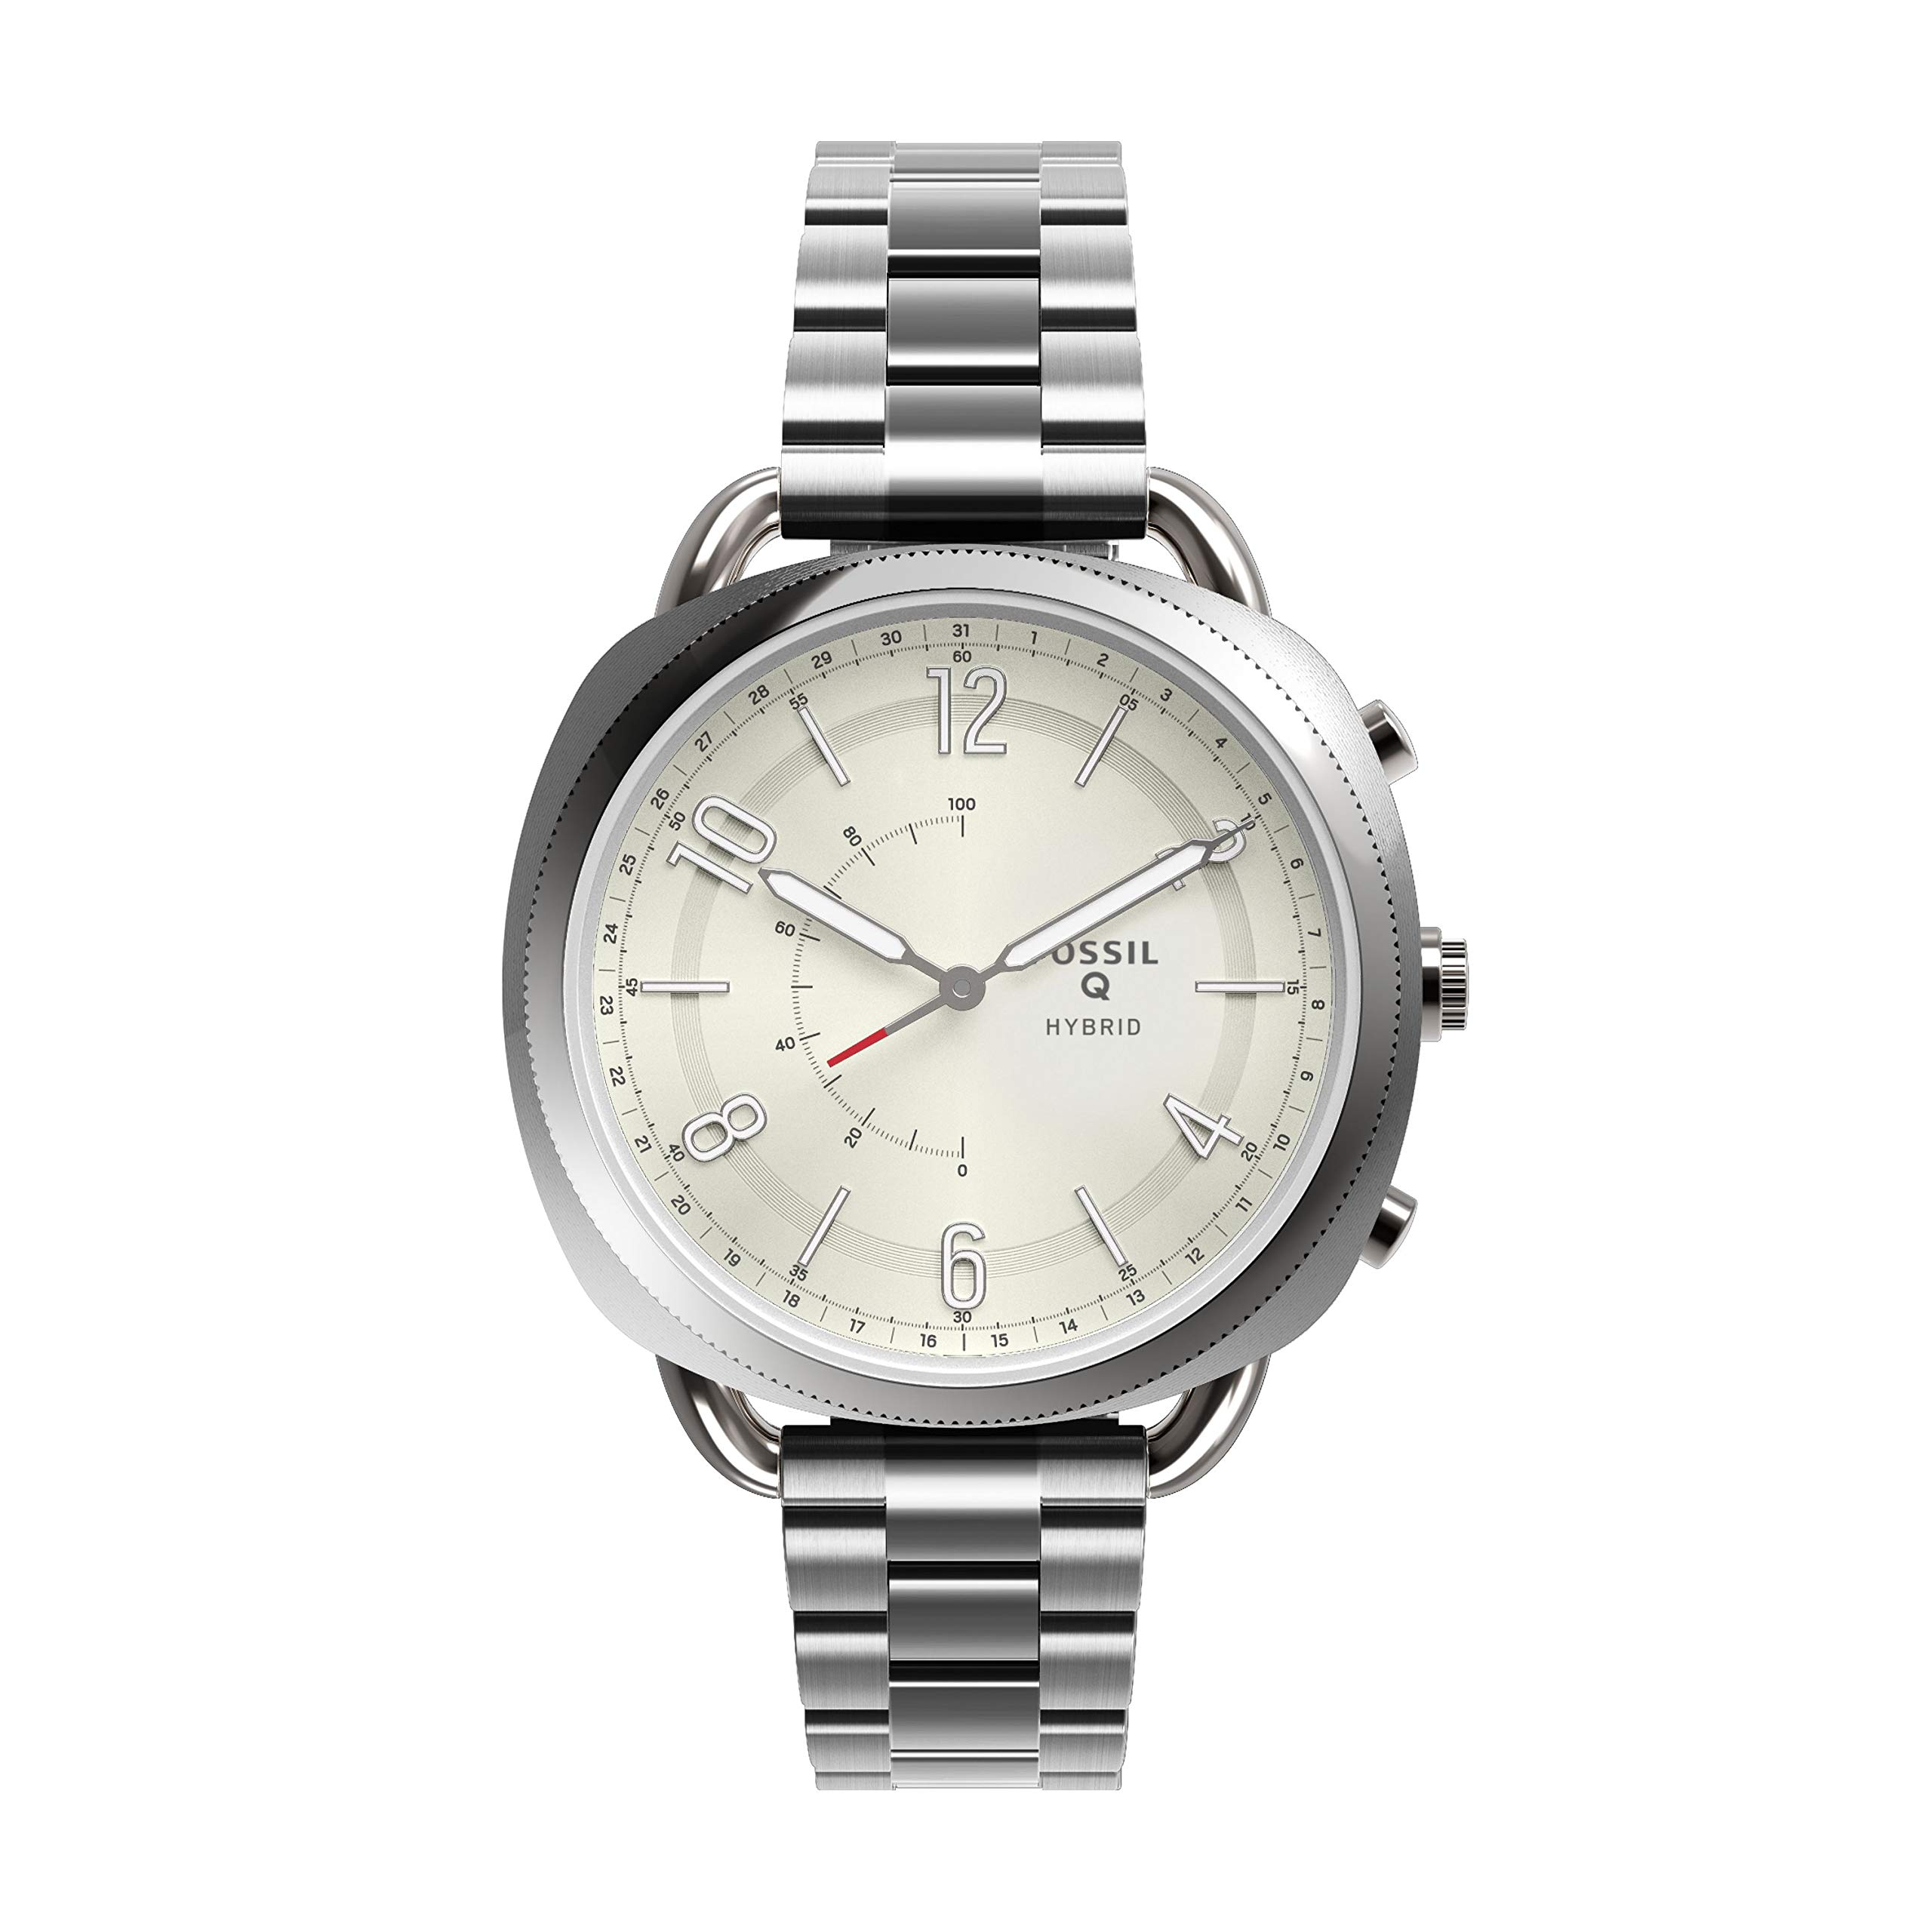 Fossil Women's Accomplice Stainless Steel Hybrid Smartwatch, Color: Silver (Model: FTW1202) by Fossil